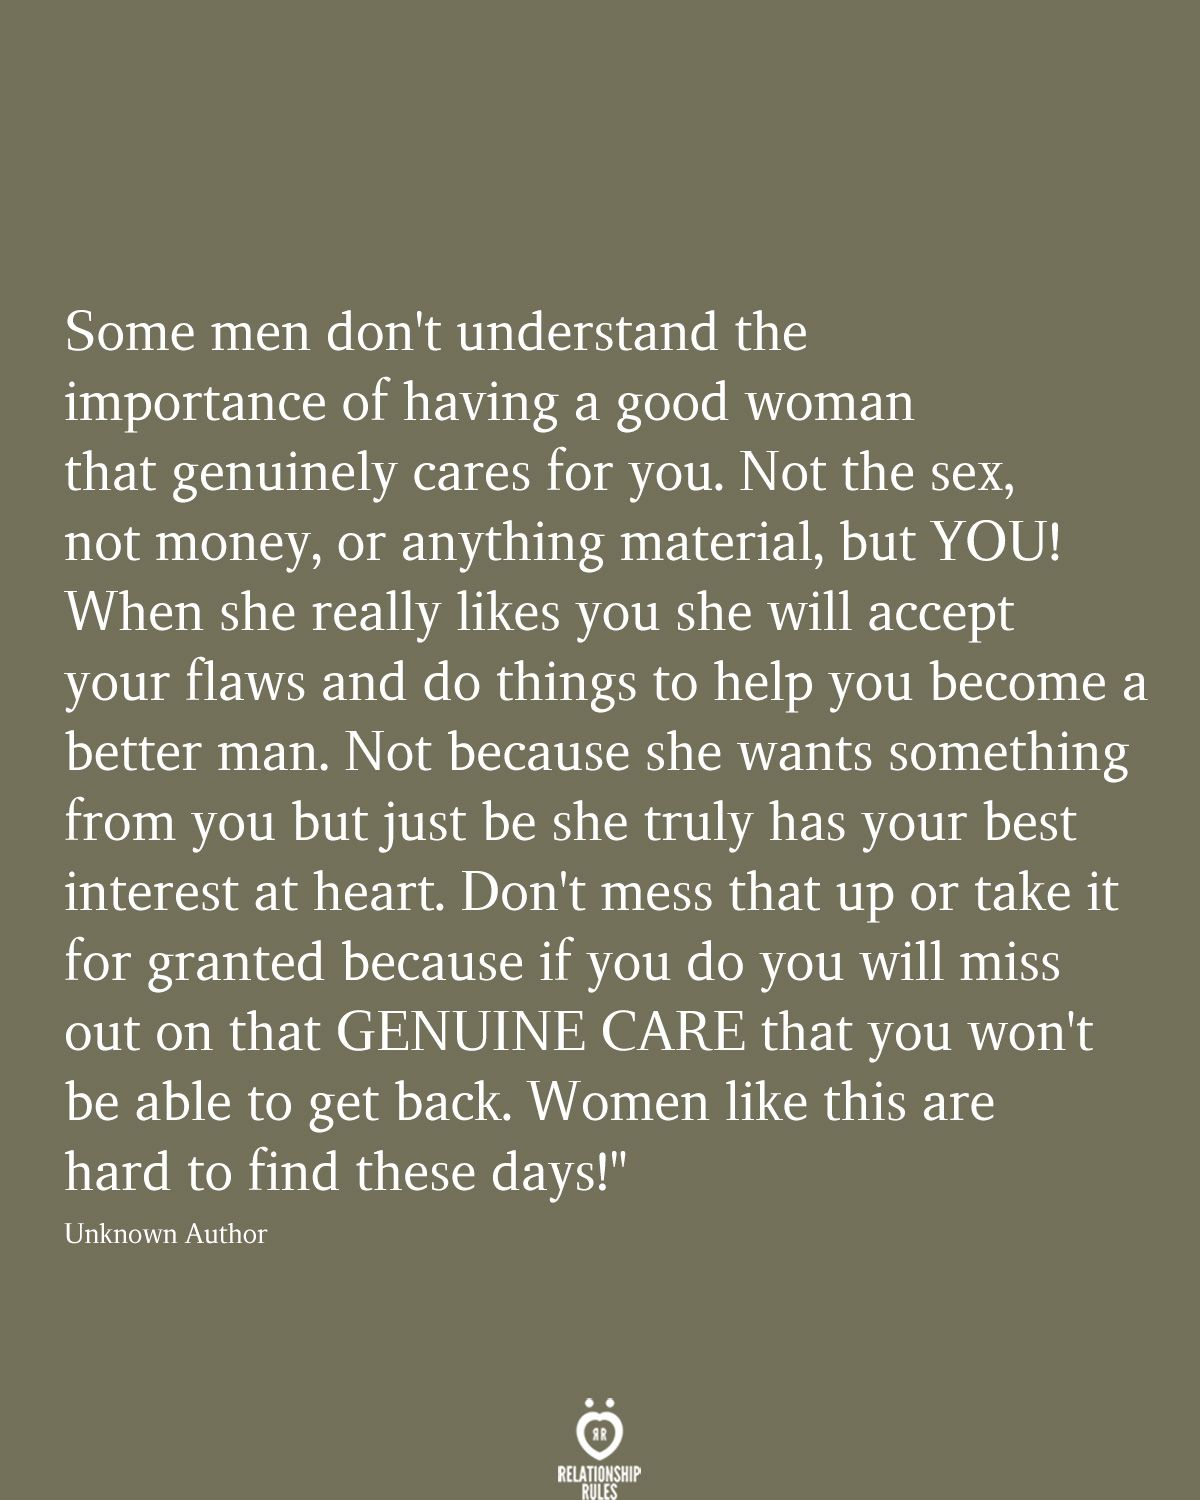 Some Men Don T Understand The Importance Of Having A Good Woman That Genuinely Cares For You Good Man Quotes Understanding Quotes Granted Quotes